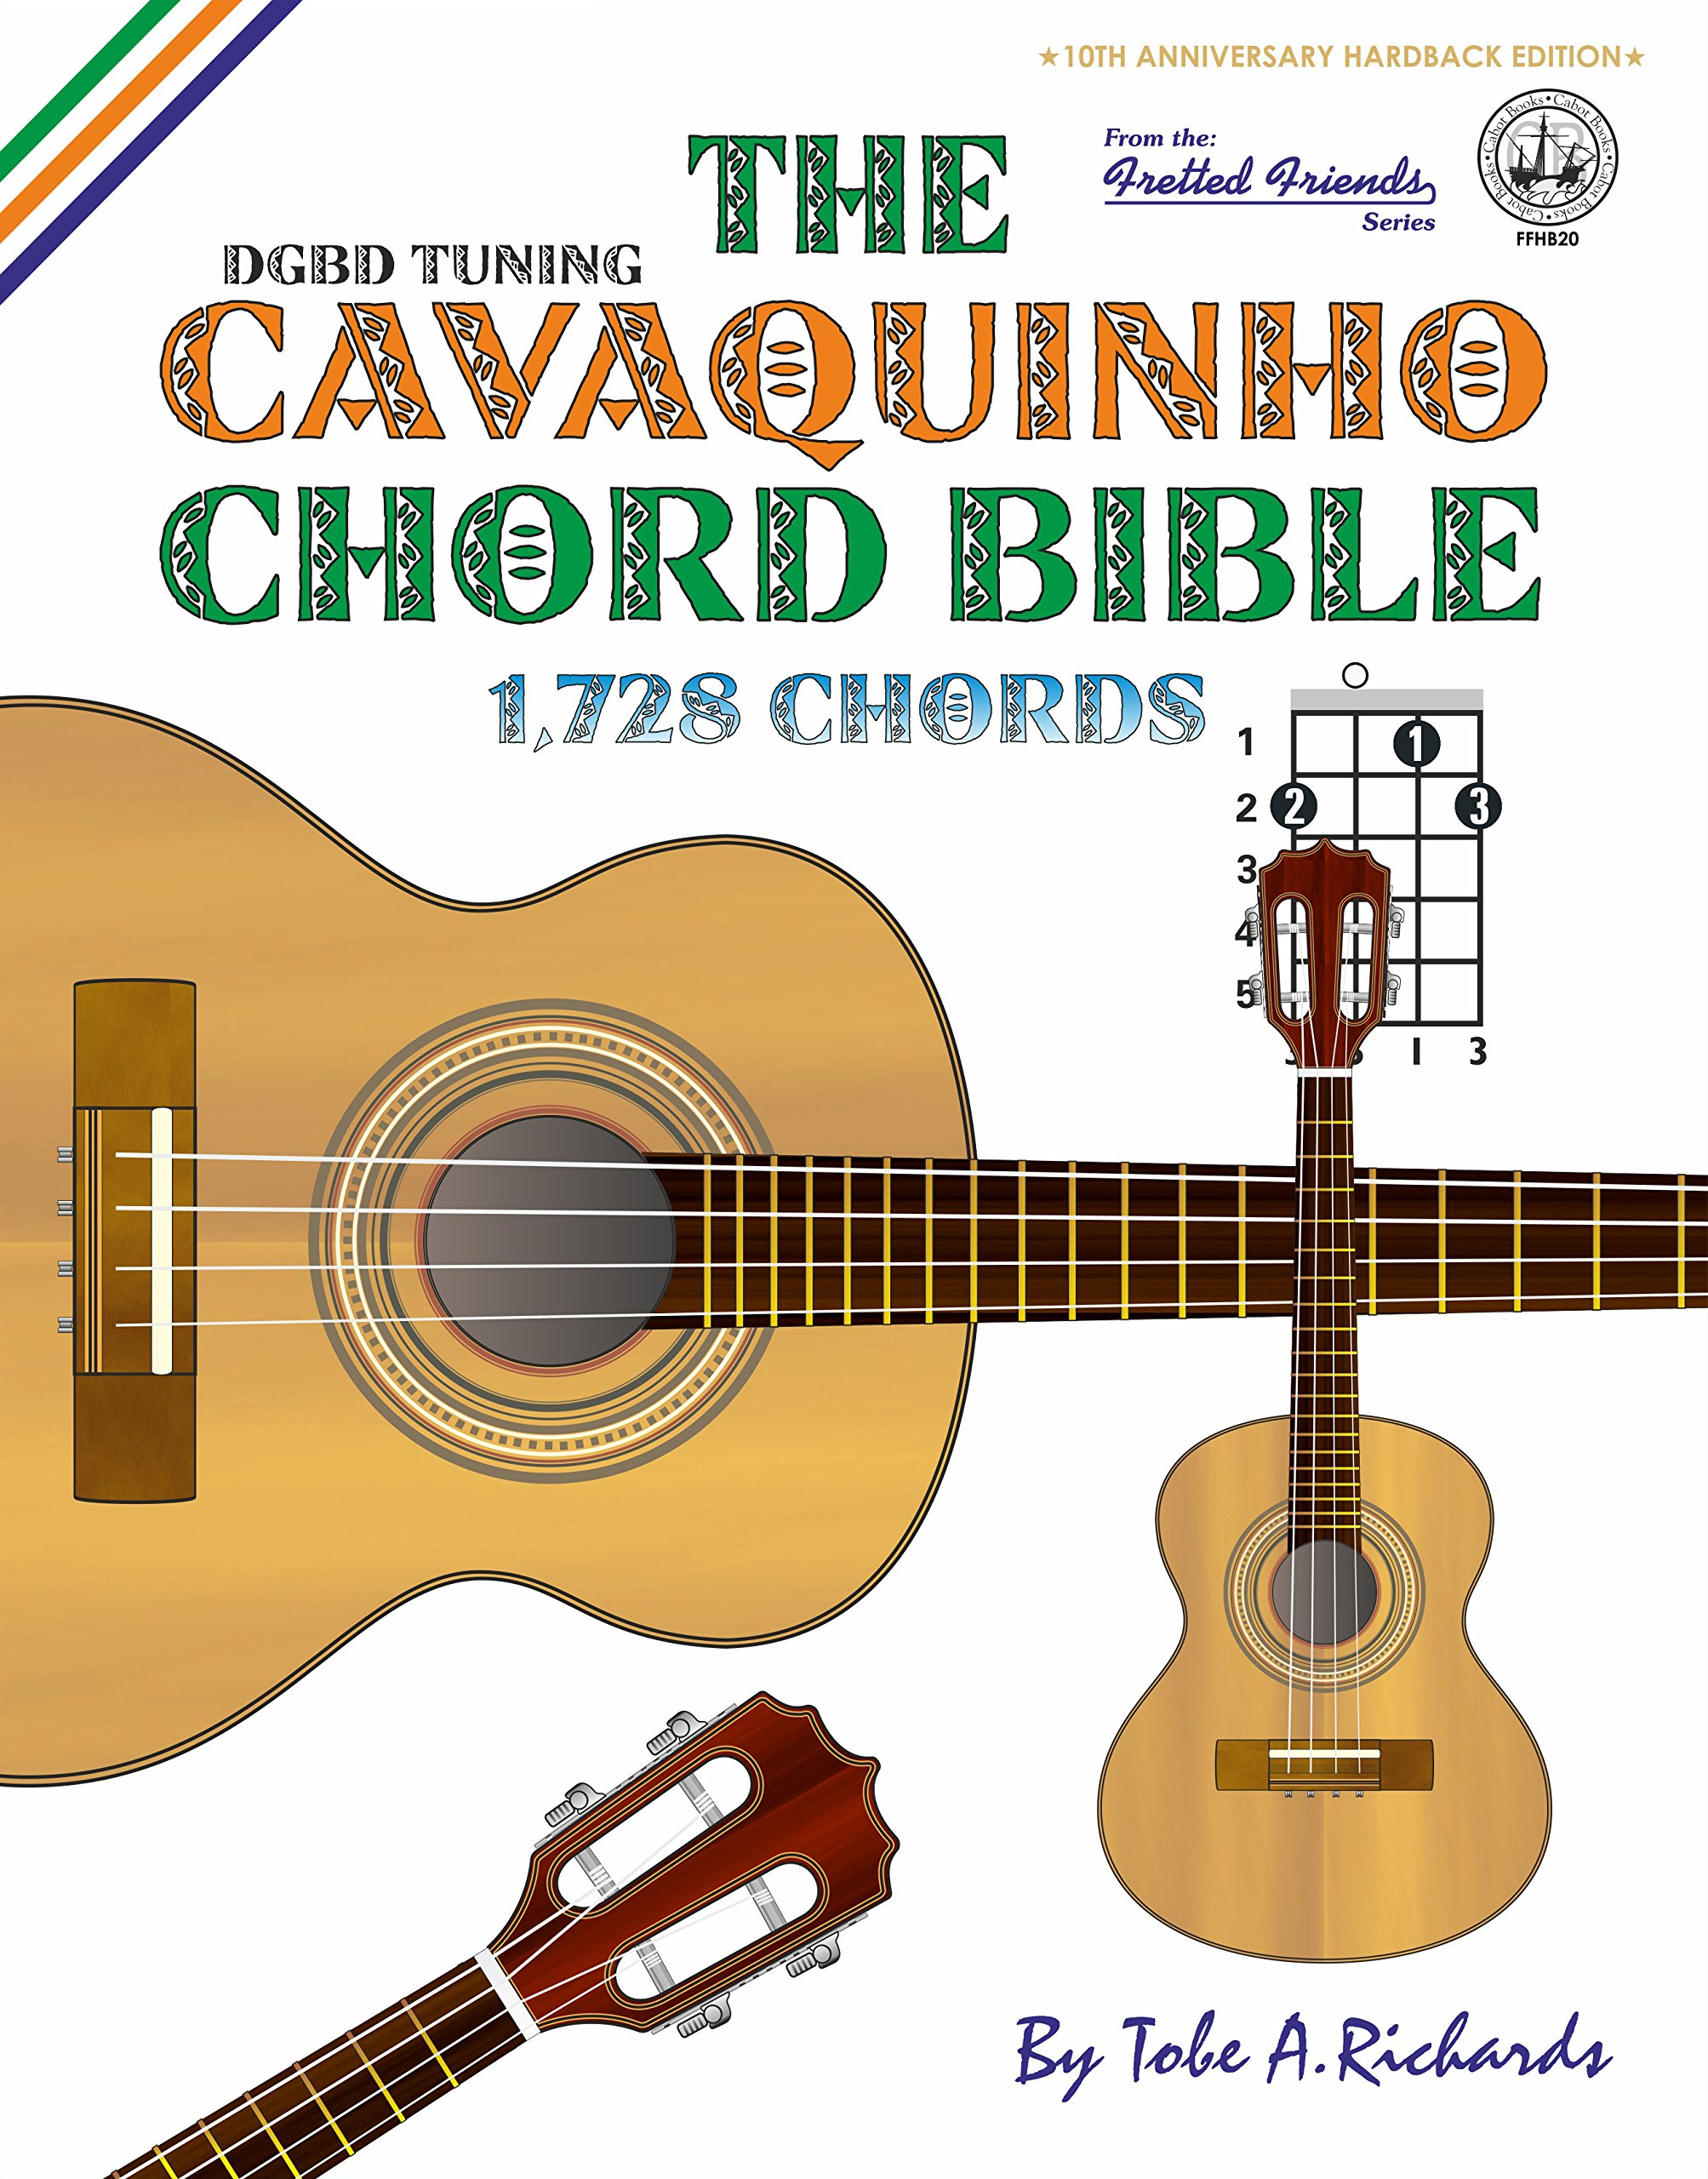 The Cavaquinho Chord Bible: DGBD Standard Tuning 1,728 Chords (Fretted Friends Series)